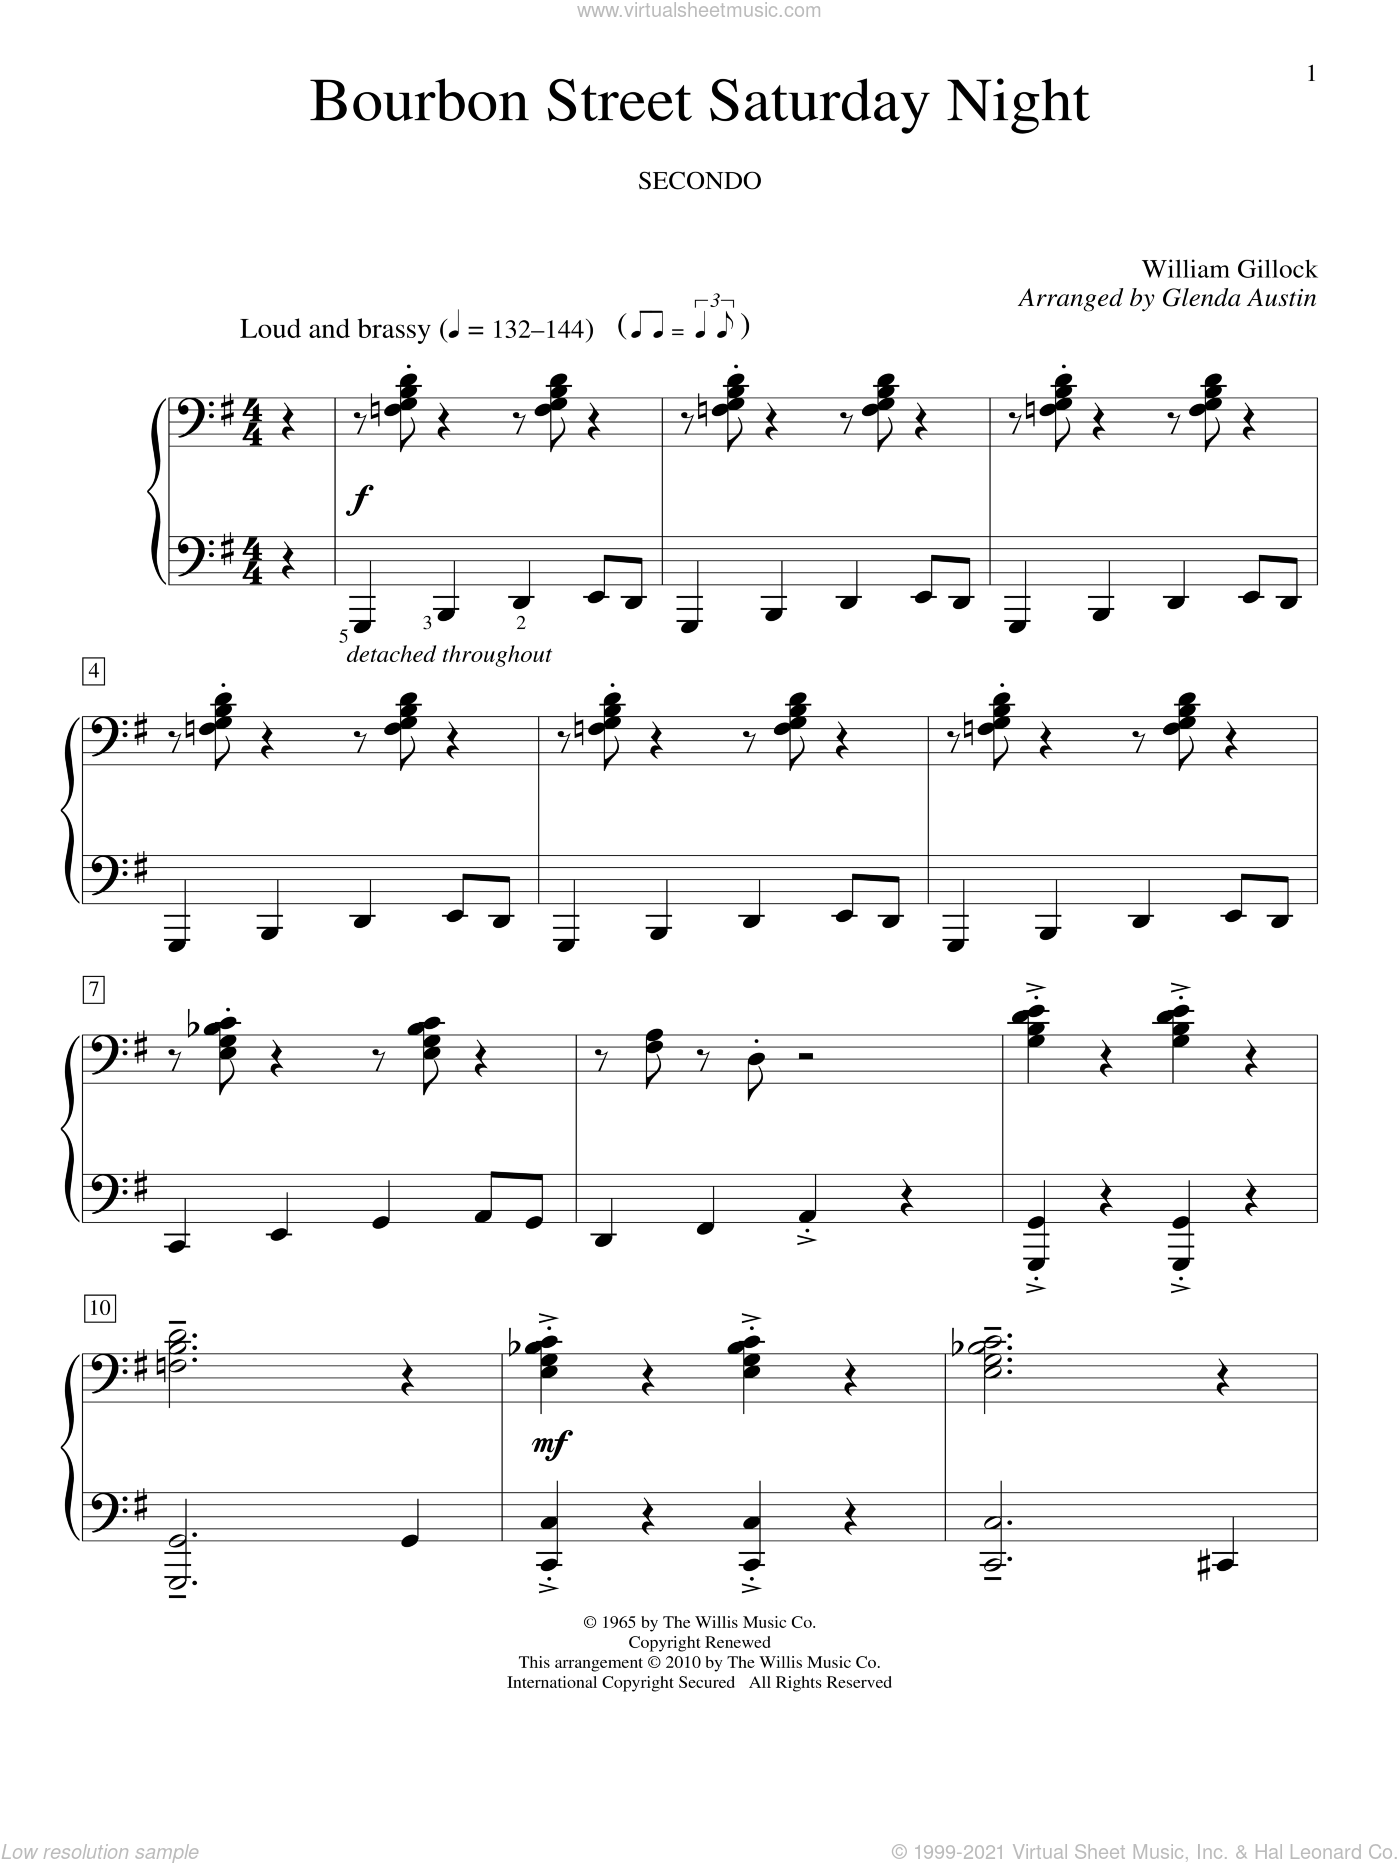 Bourbon Street Saturday Night sheet music for piano four hands (duets) by William Gillock